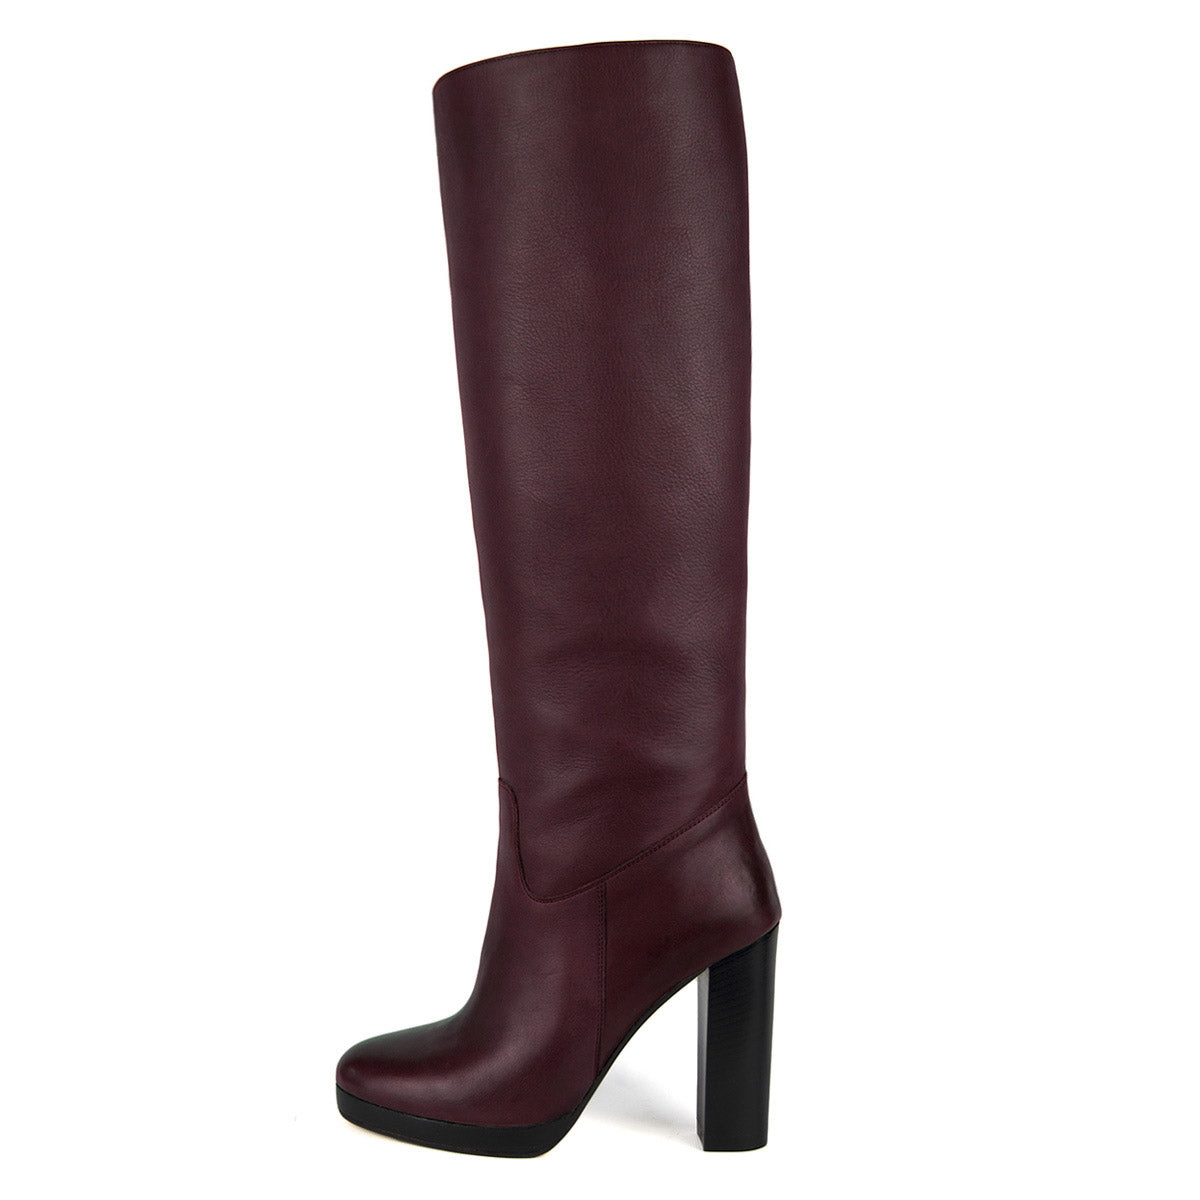 Ribes, burgundy - wide calf boots, large fit boots, calf fitting boots, narrow calf boots